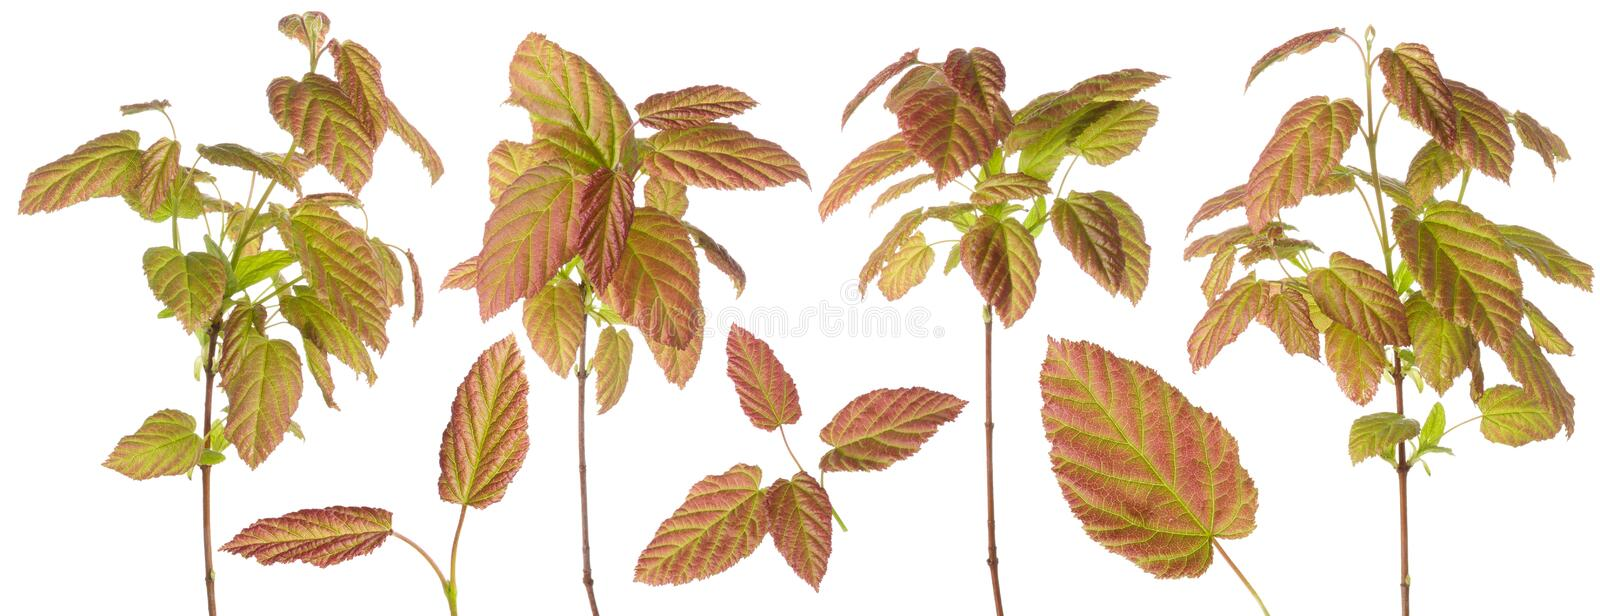 Purple green colored plant leaves on a branch or stem and a single leaf set for floral design isolated on white background royalty free stock photo